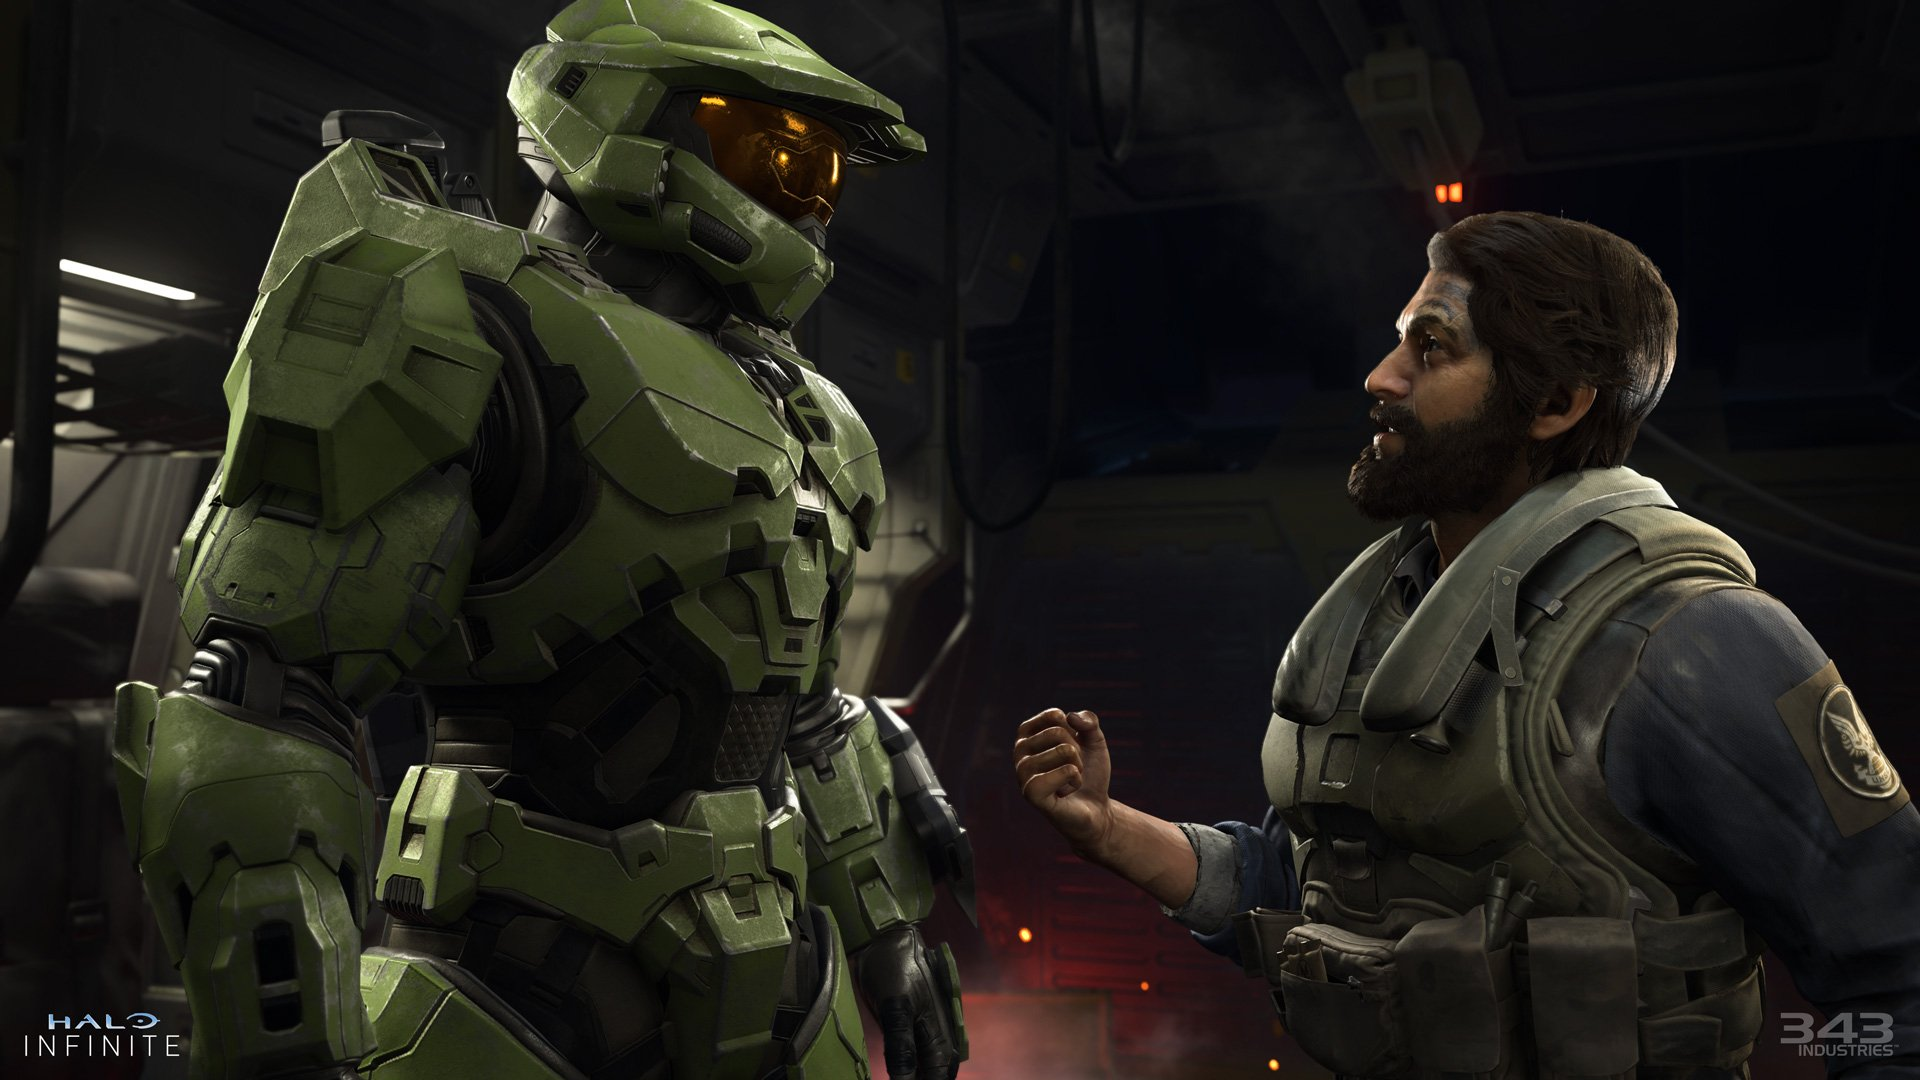 Microsoft almost resorted to an episodic release model for Halo Infinite screenshot